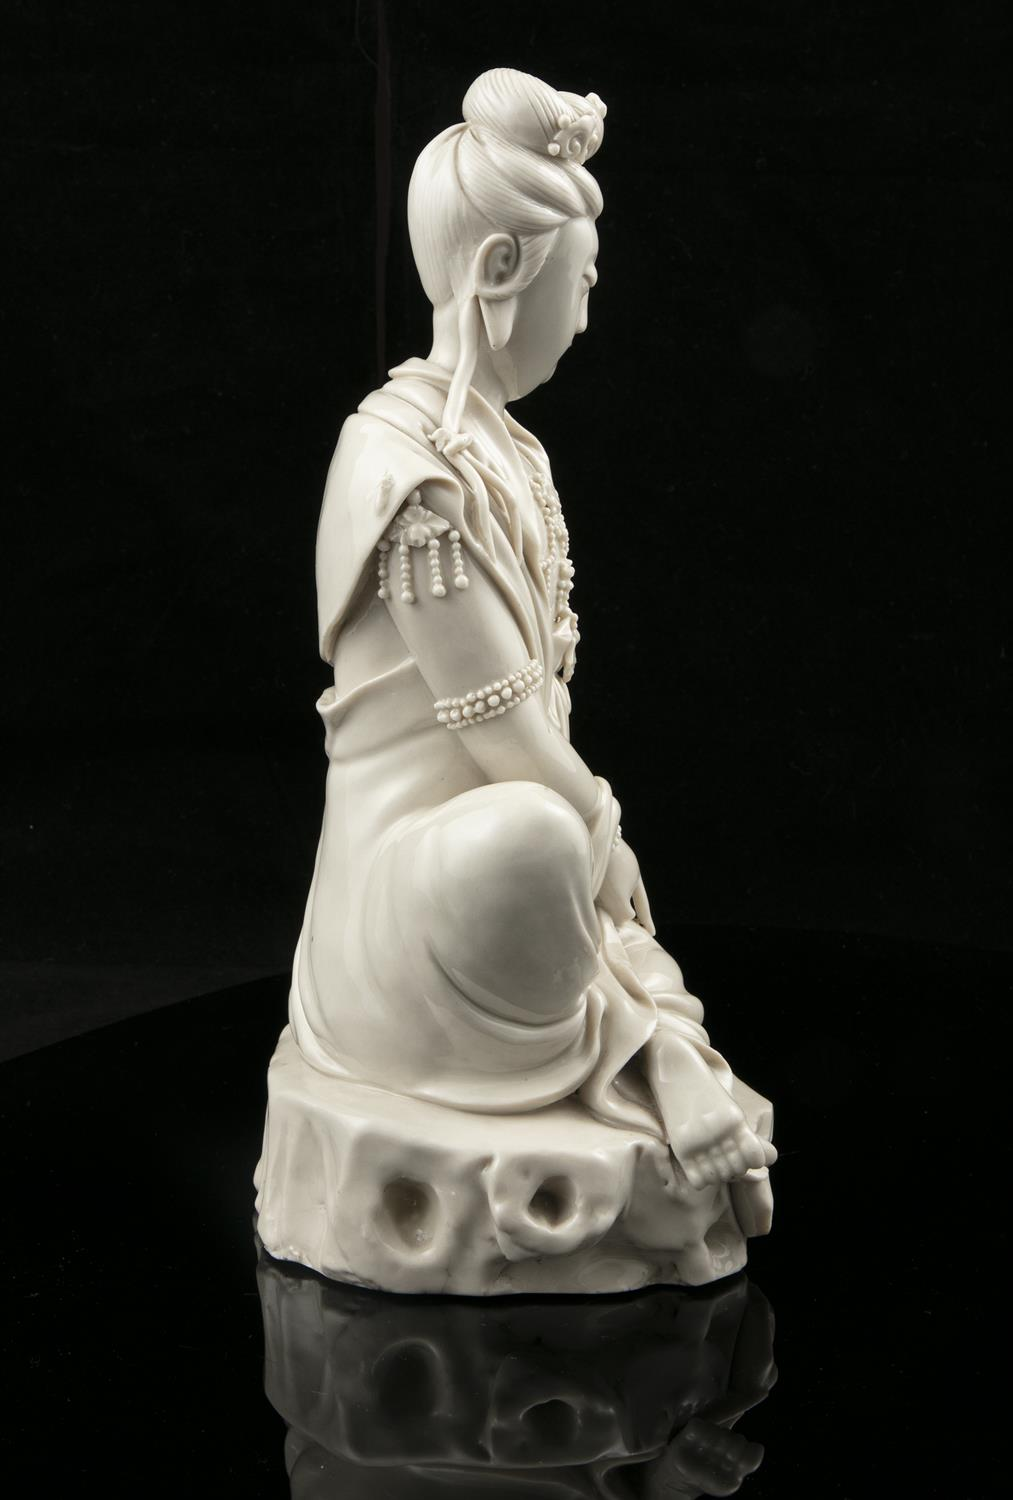 A LARGE DEHUA FIGURE OF A SEATED GUANYIN IMPRESSED WITH A HE CHAOZONG 何朝宗 CALABASH SHAPED SEAL - Image 38 of 48